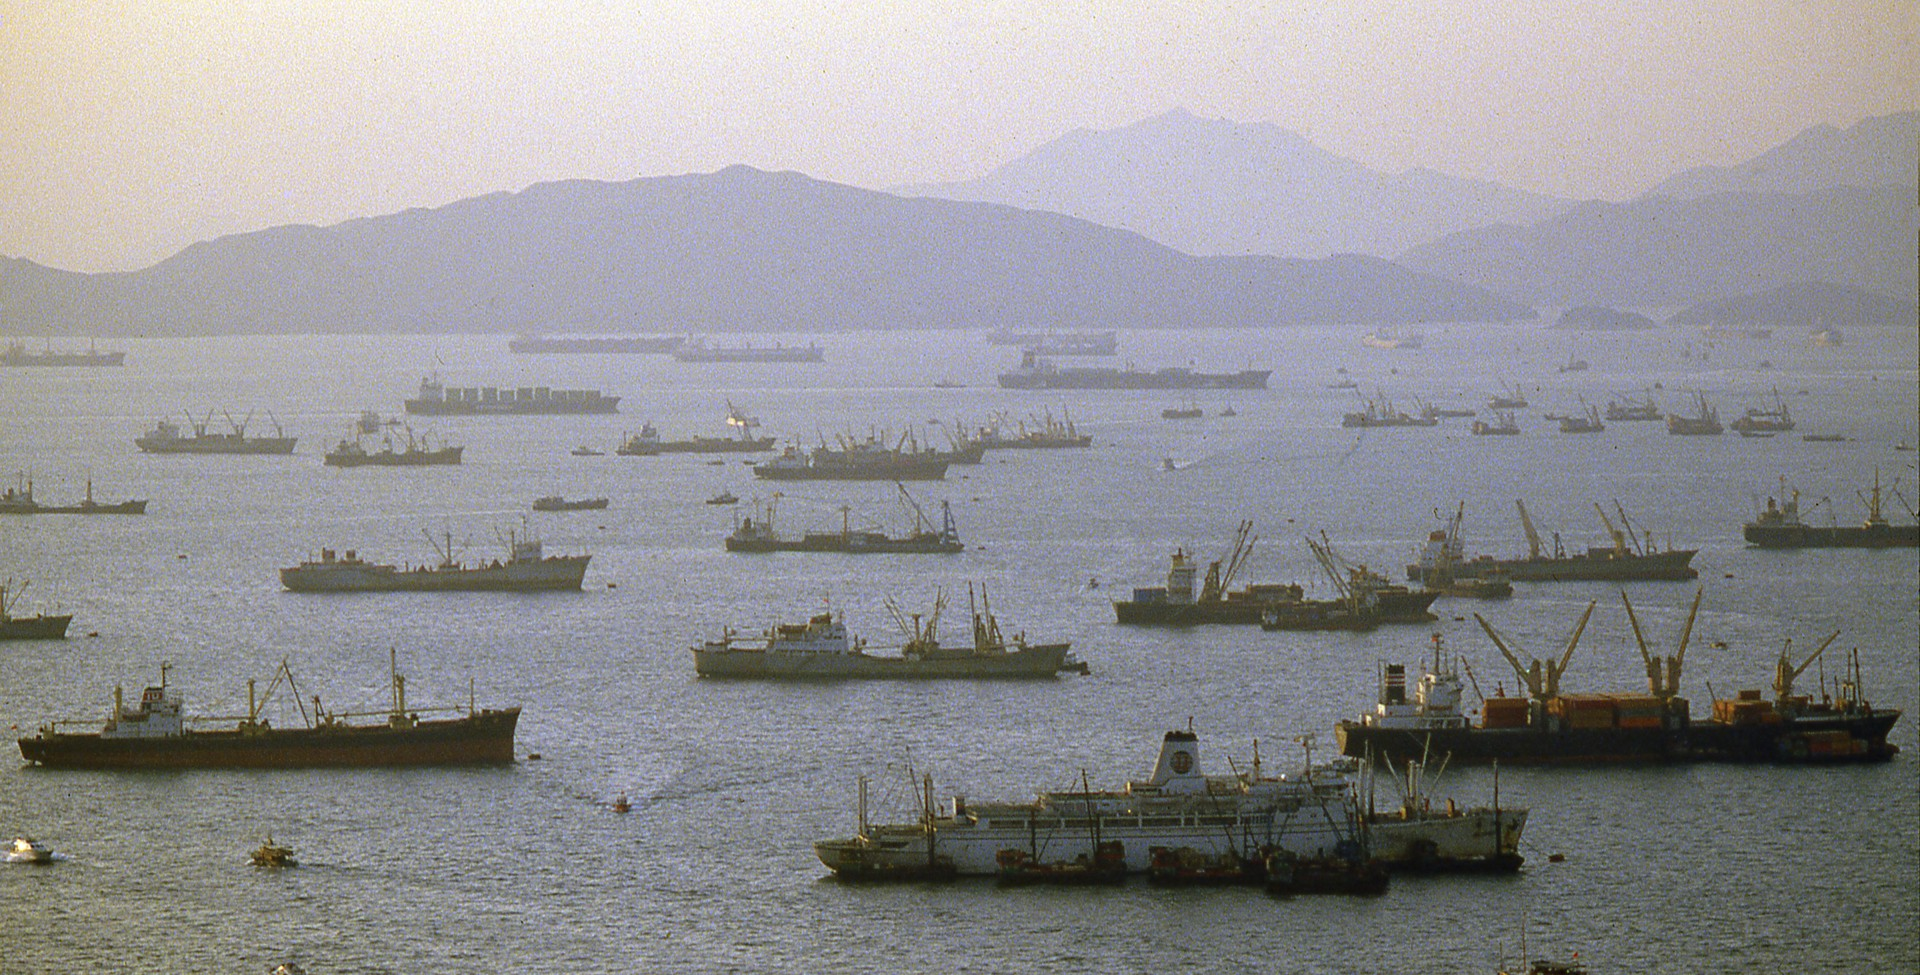 An aerial view of cargo ships in Hong Kong harbor.